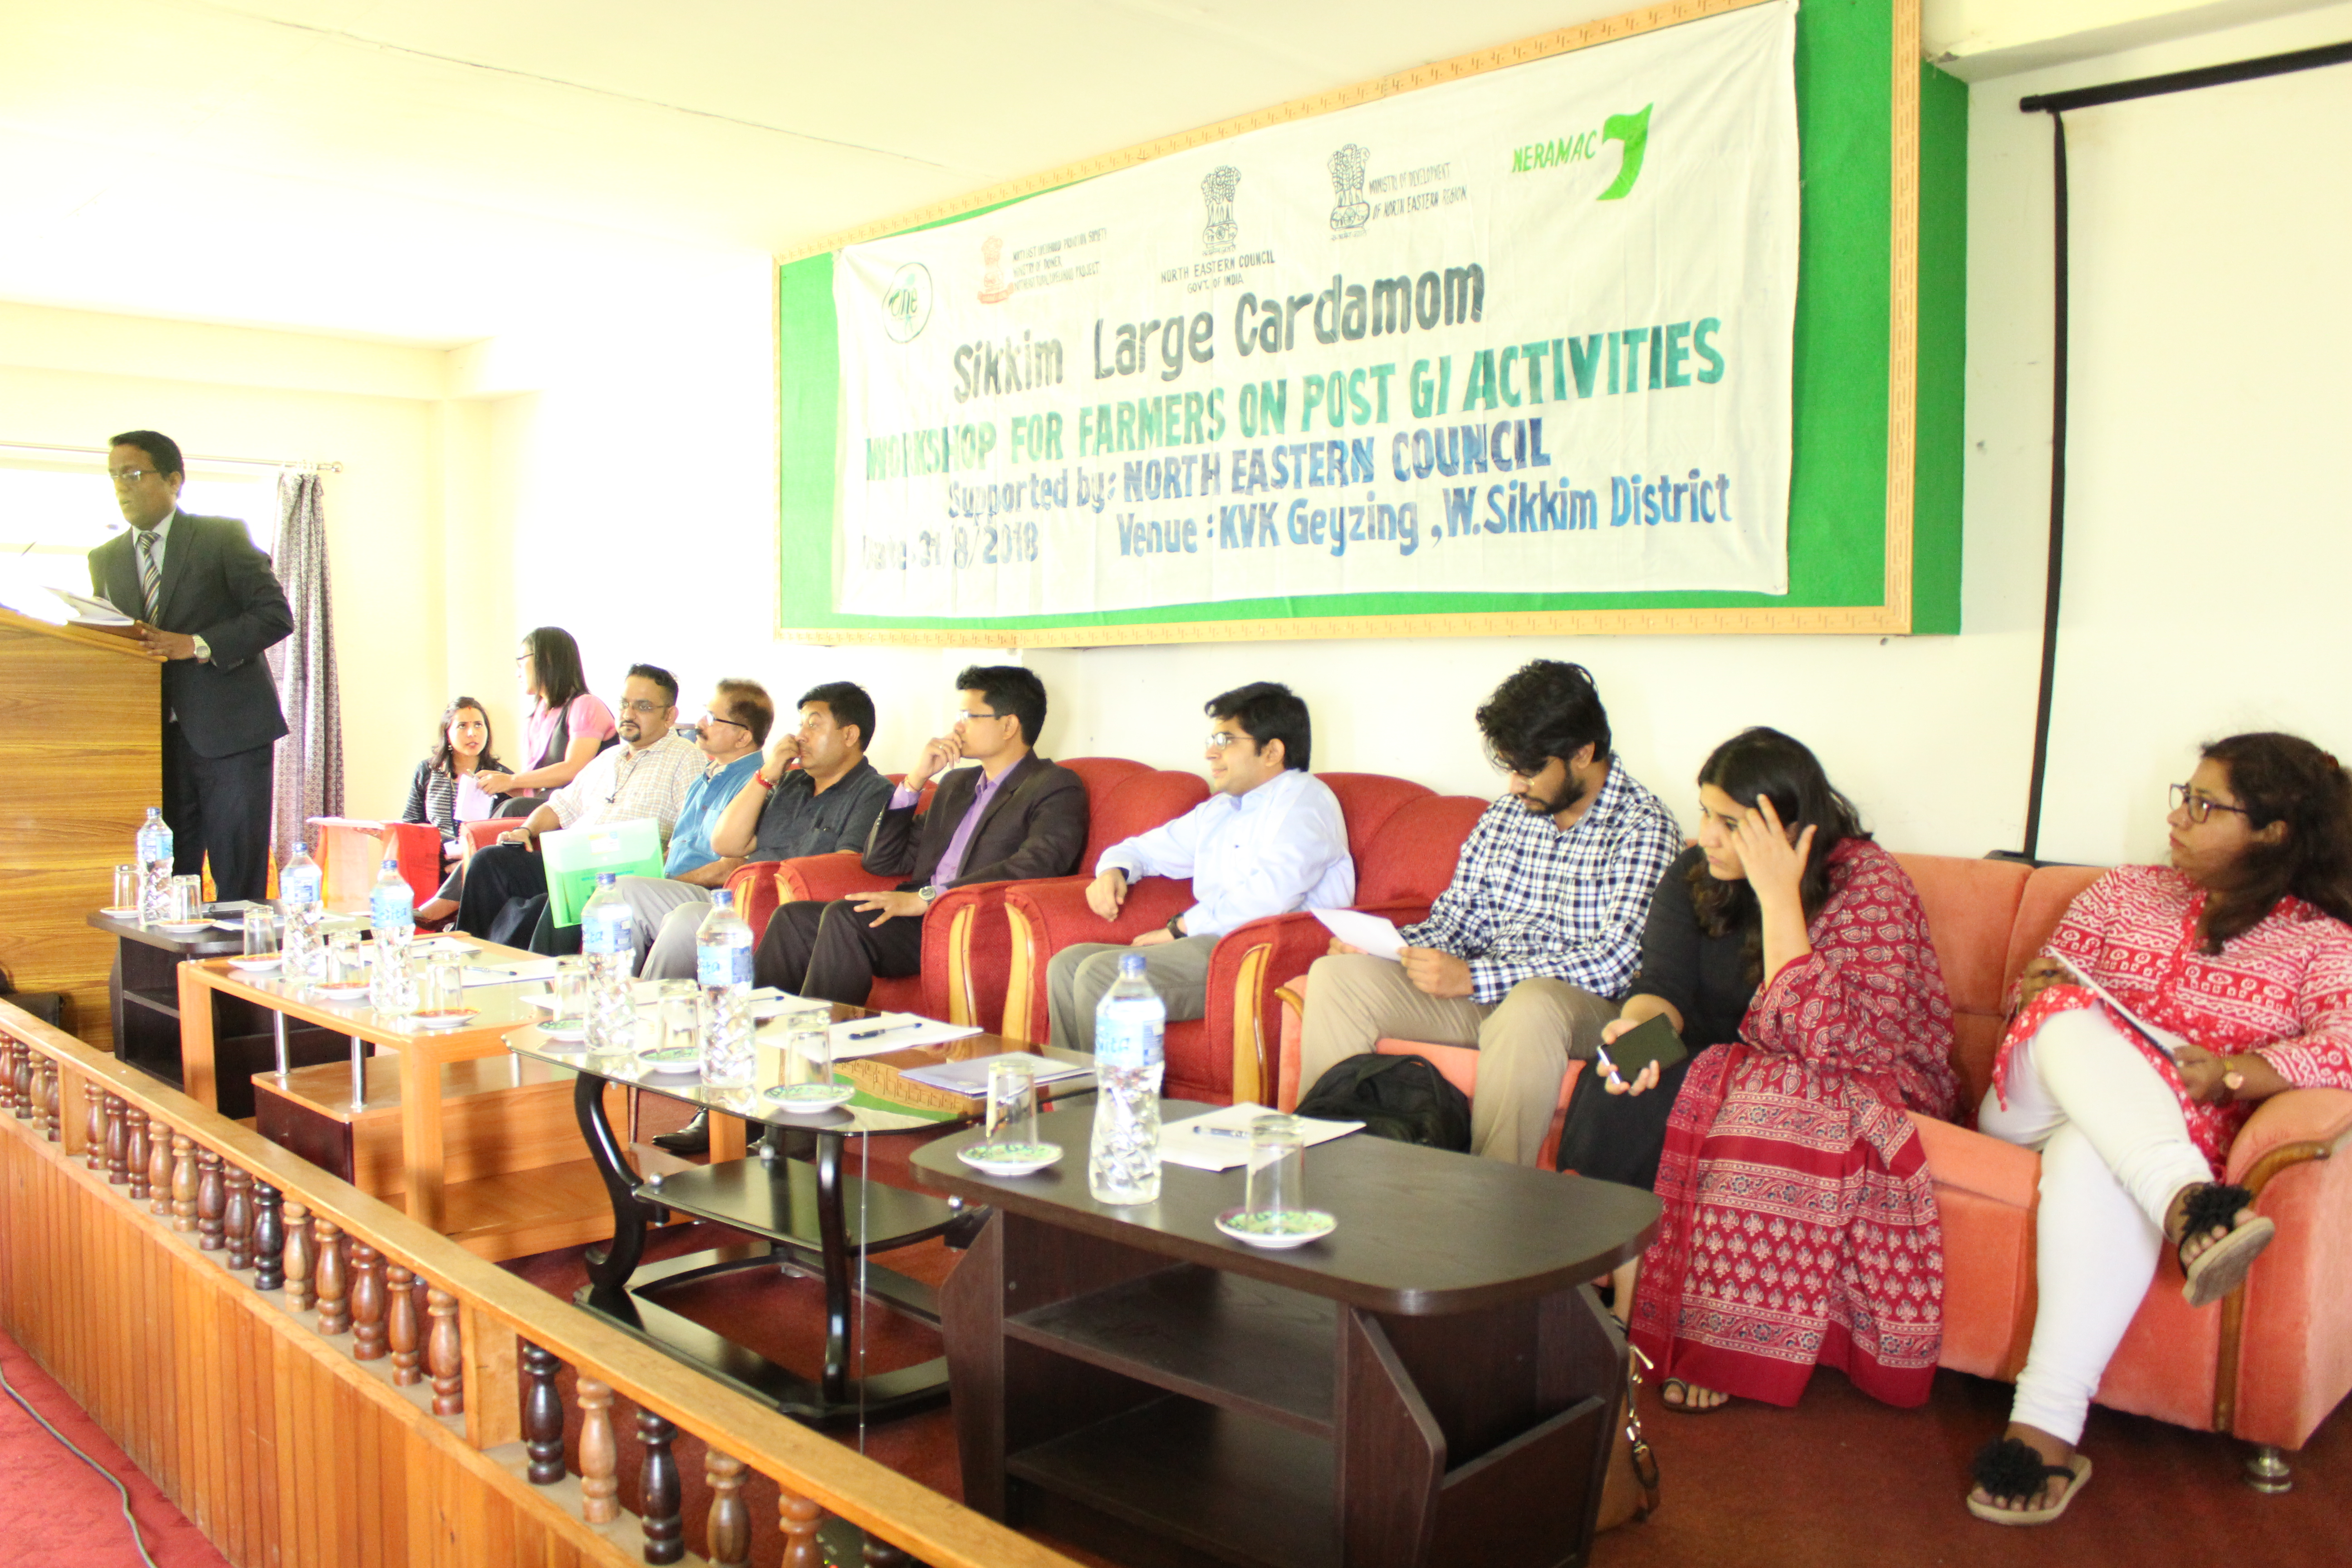 Workshop for Farmers on Post GI Activities at Sikkim for Large Cardamom